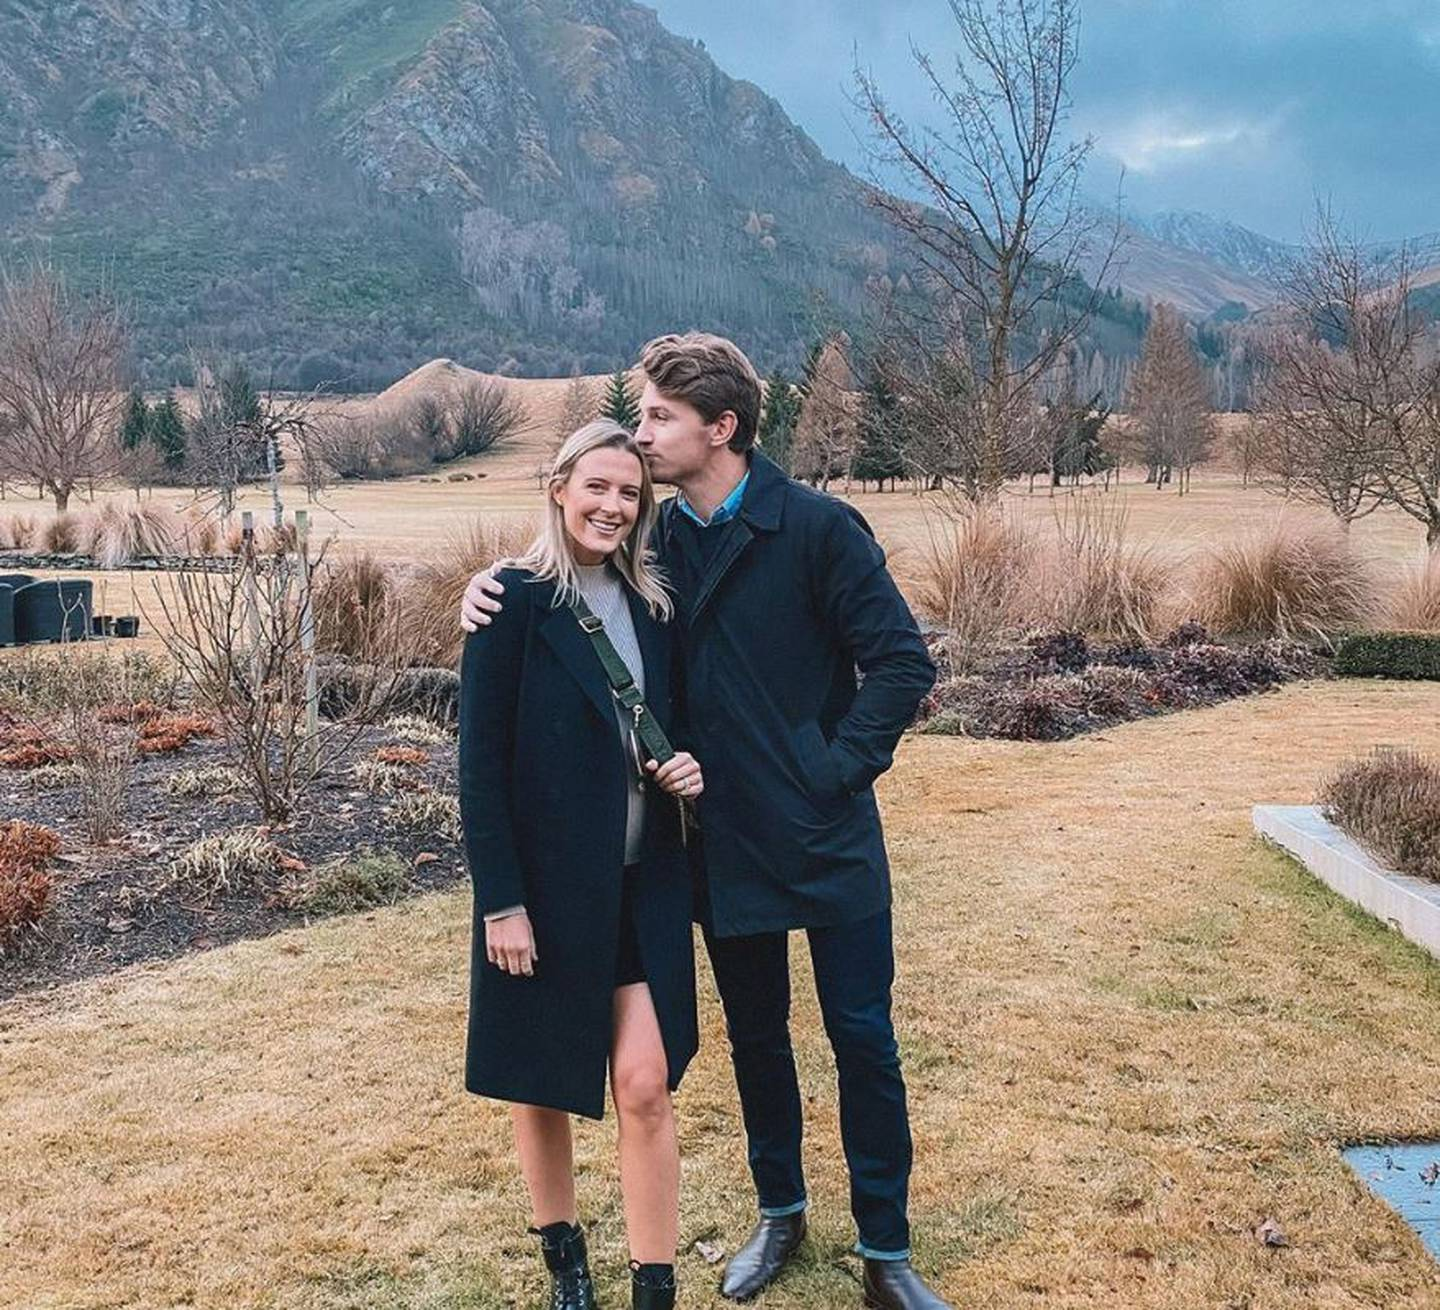 Hannah and Beauden Barrett will be flying to Japan two months after the birth of their baby girl...